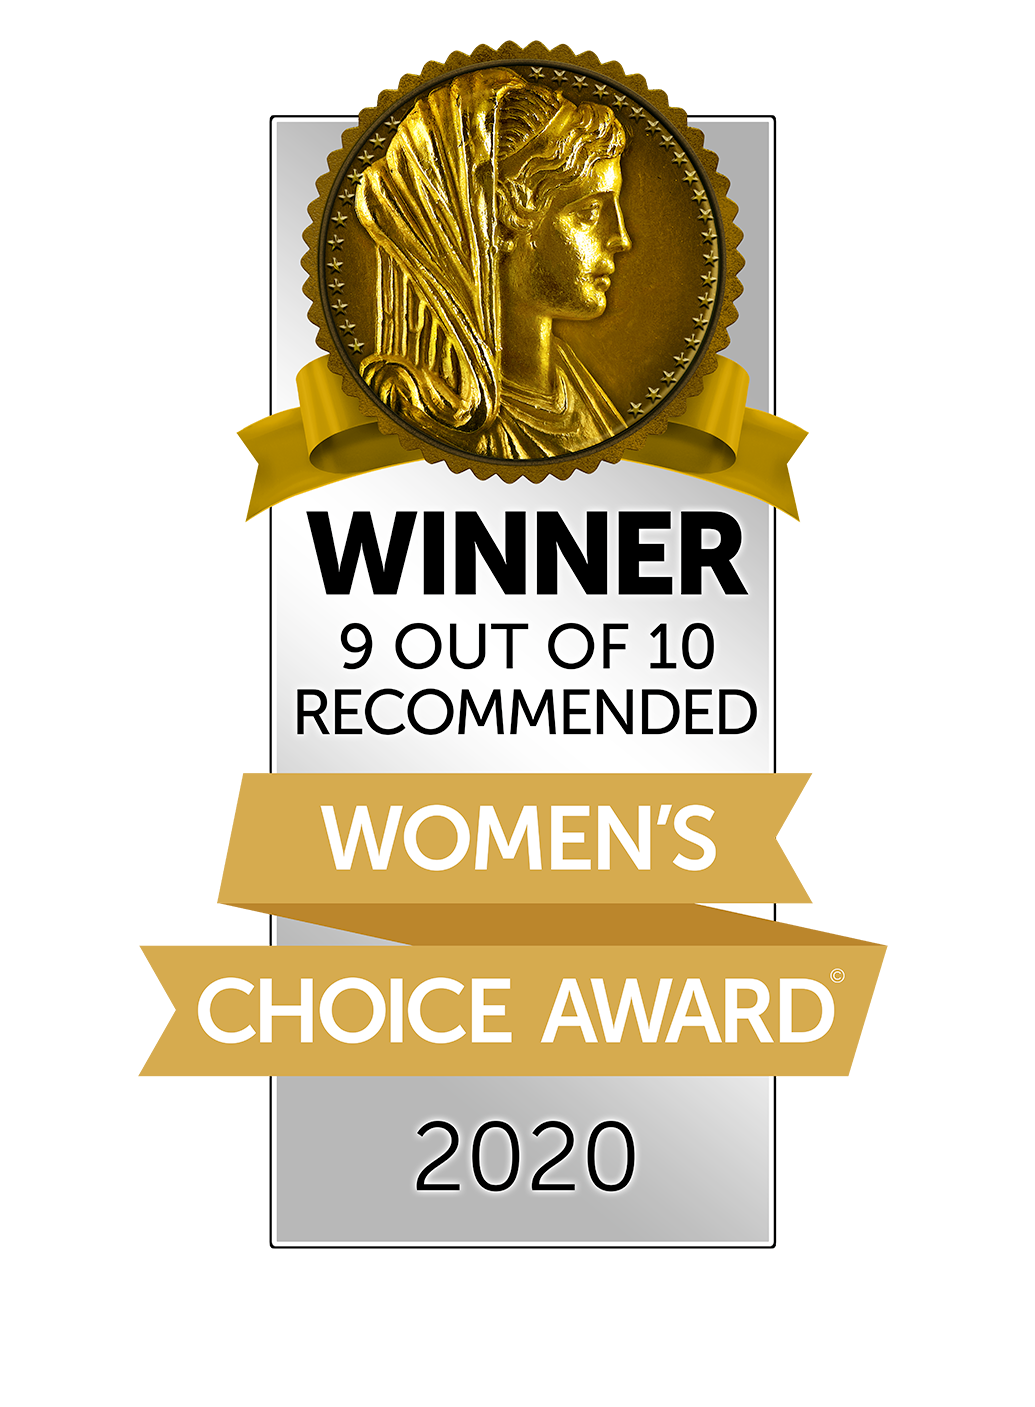 2020 Women's Choice Award